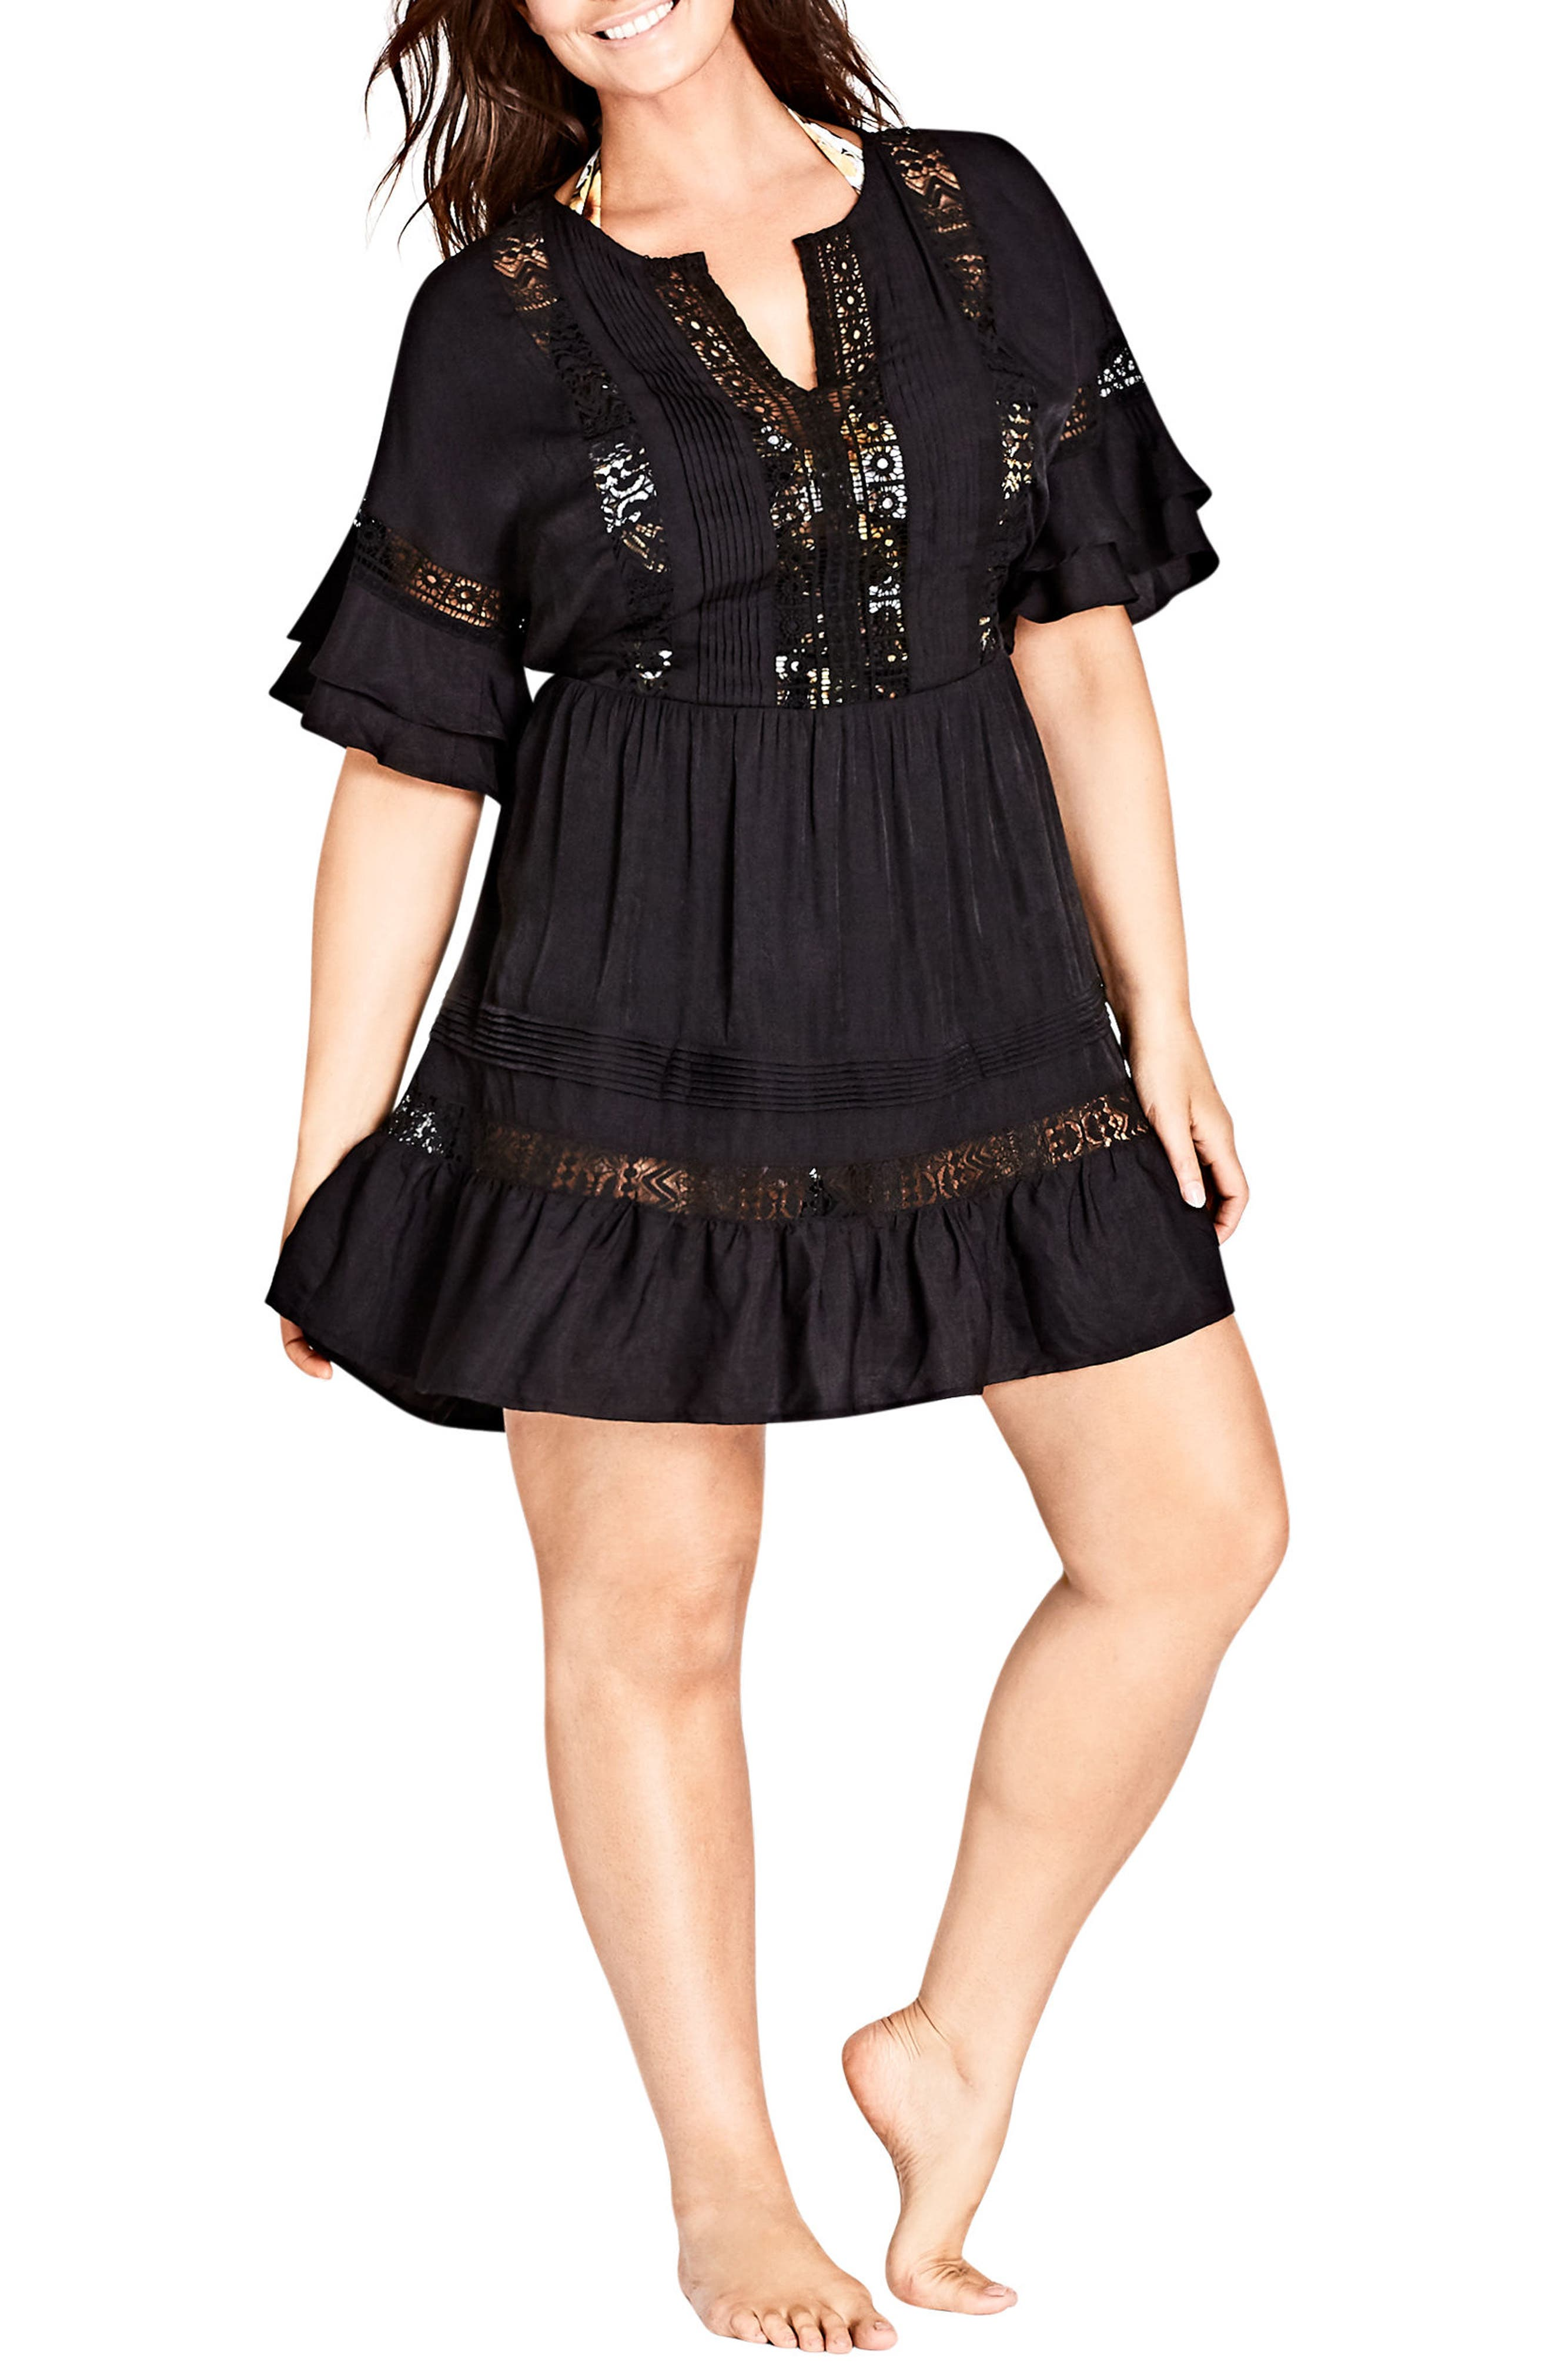 Evie Lace Trim Cover-Up Dress,                         Main,                         color, Black